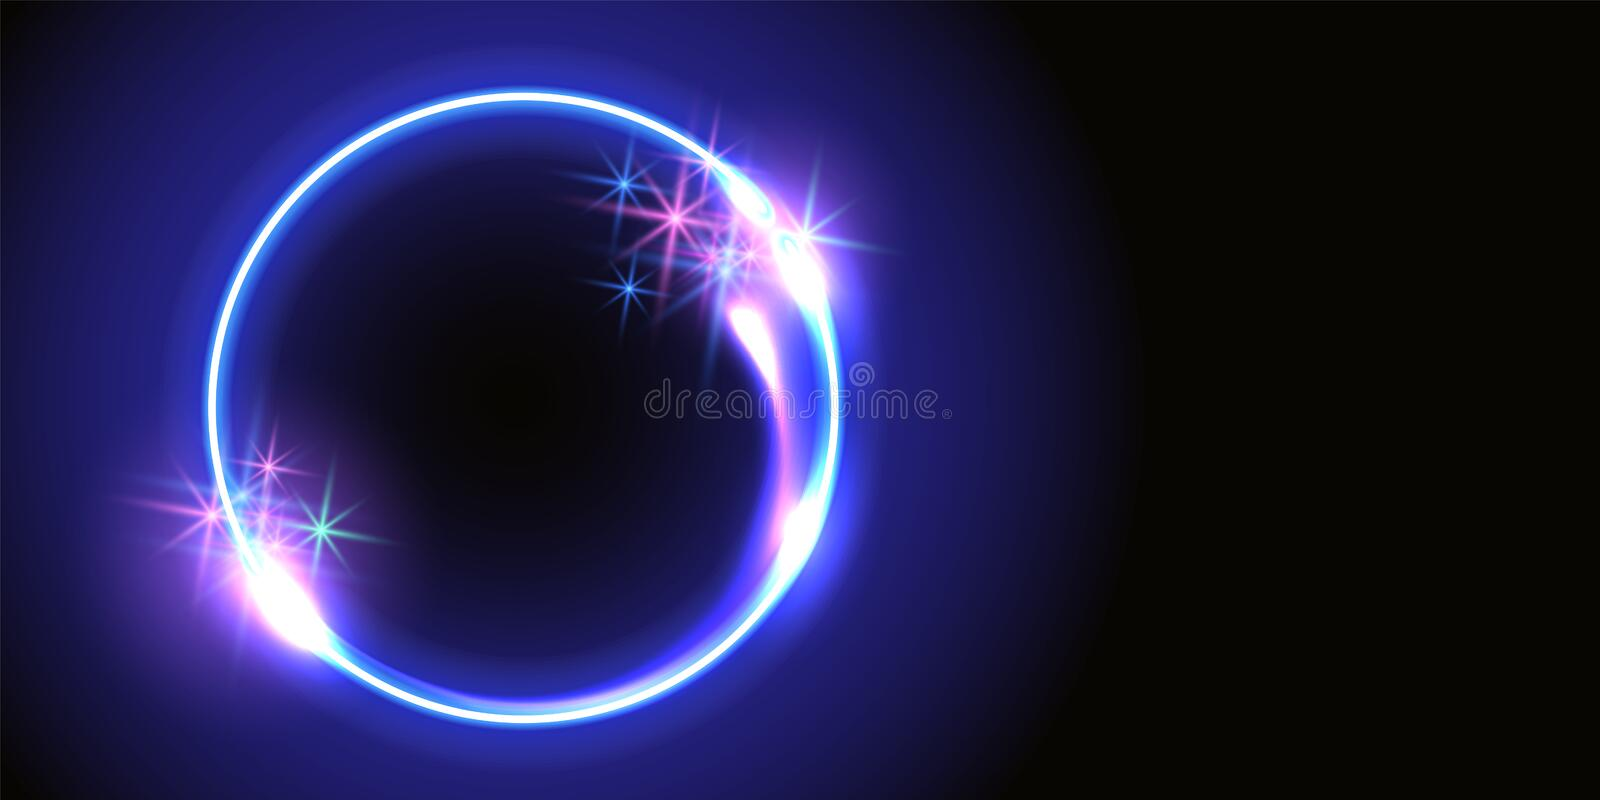 Fantastic background with neon round frame, sparkle stars and space portal into another dimension. Abstract fantastic background with neon round frame, sparkle vector illustration